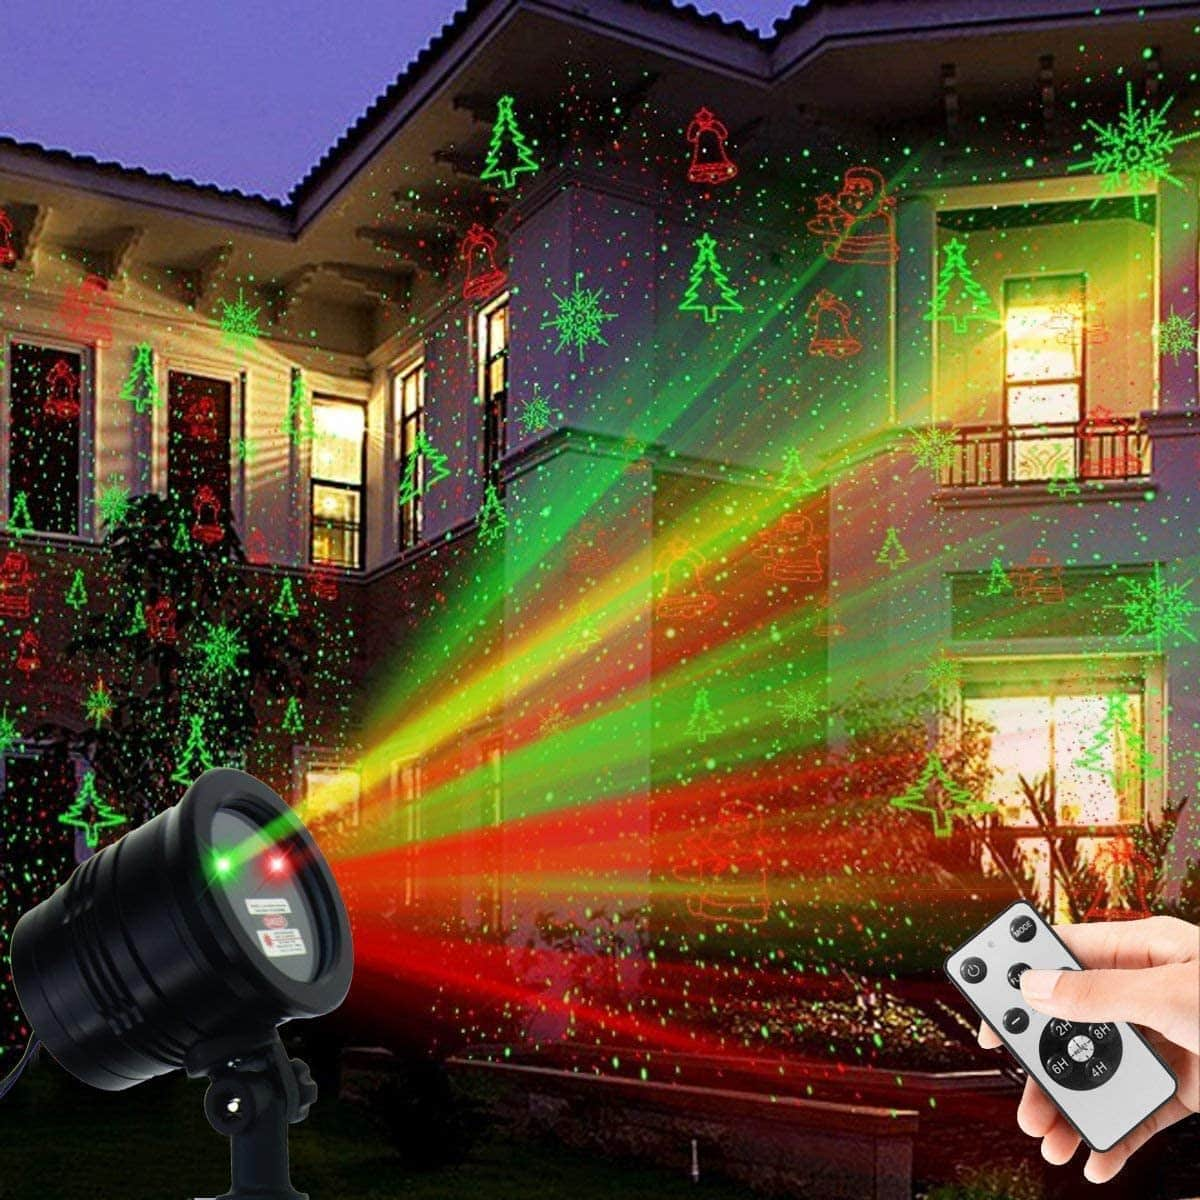 YINUO Light Green-Red Spotlight Decorating Pattern Outdoor Christmas Light Projector